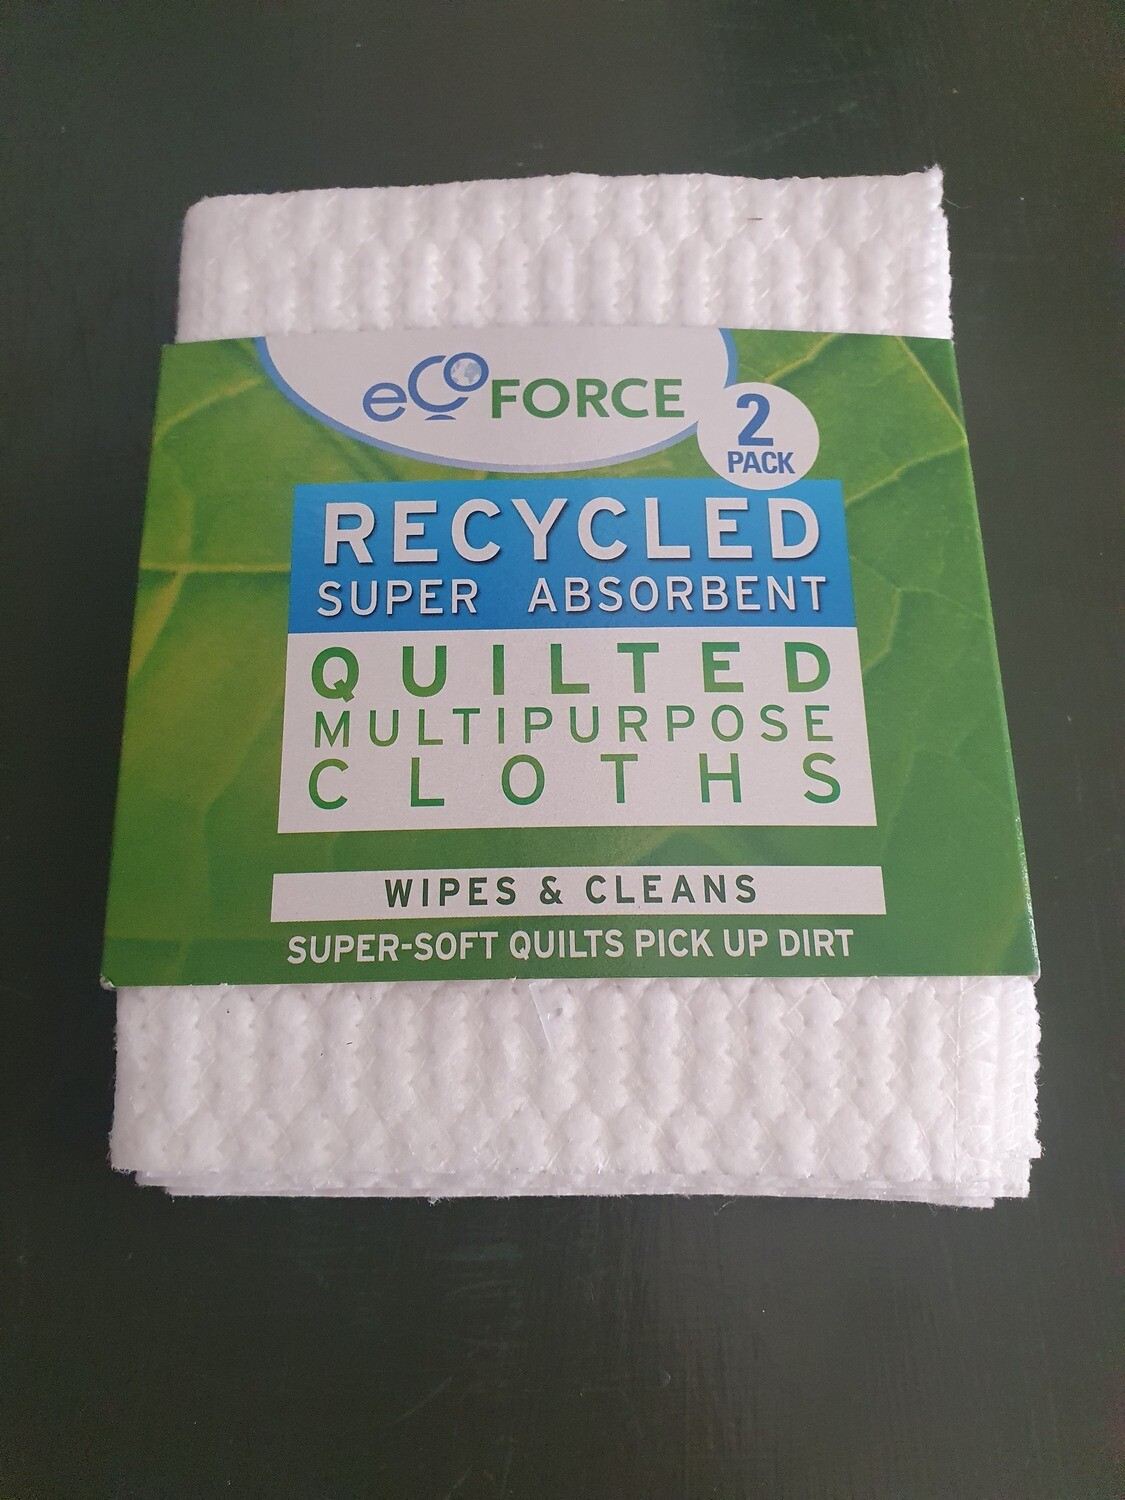 Ecoforce 2 pack Recycled Cloths